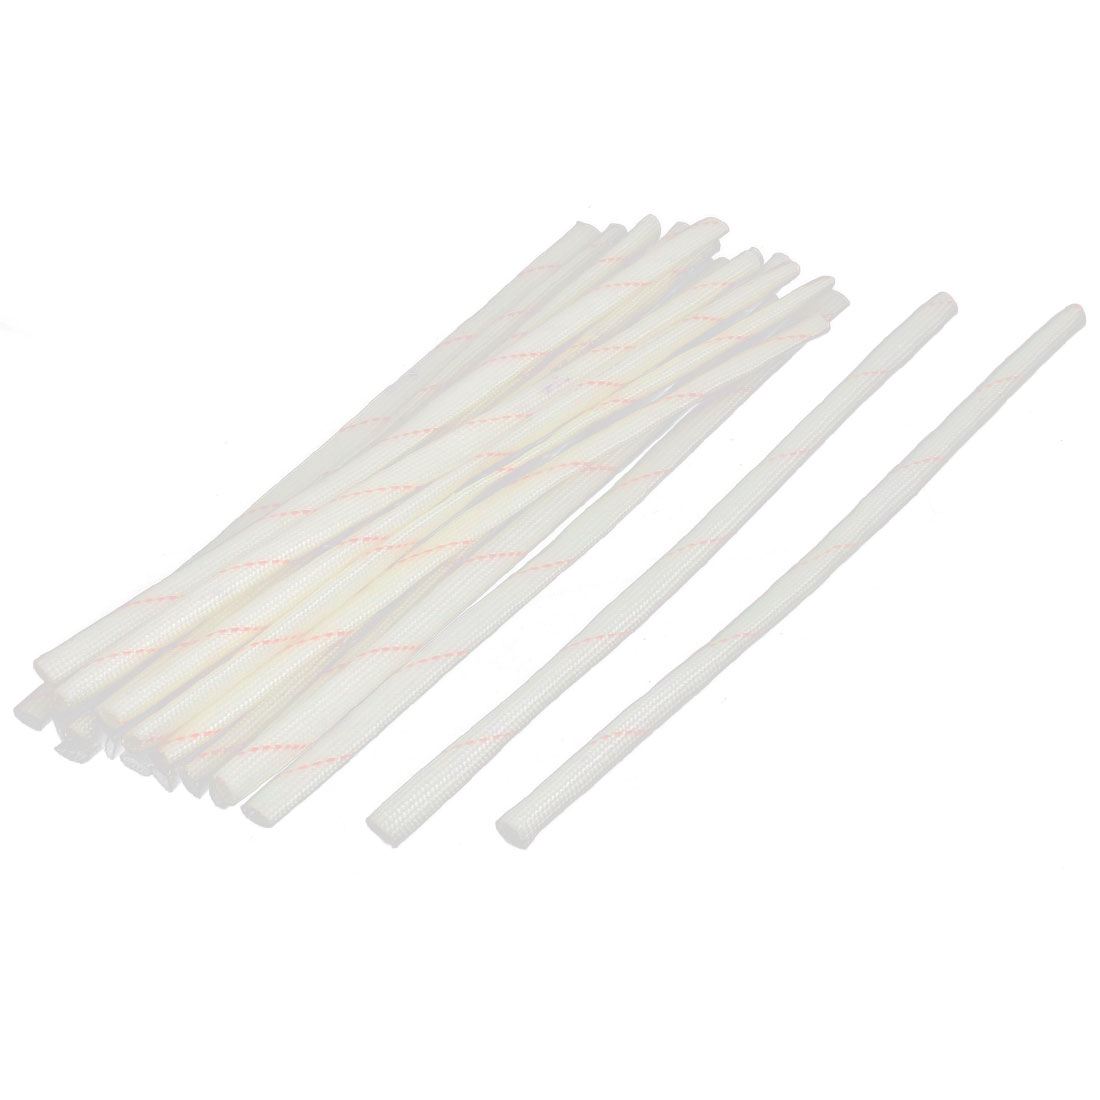 20 Pcs 20cm 5mm Diameter PVC Fiberglass Insulating Sleeving Tube Sleeve